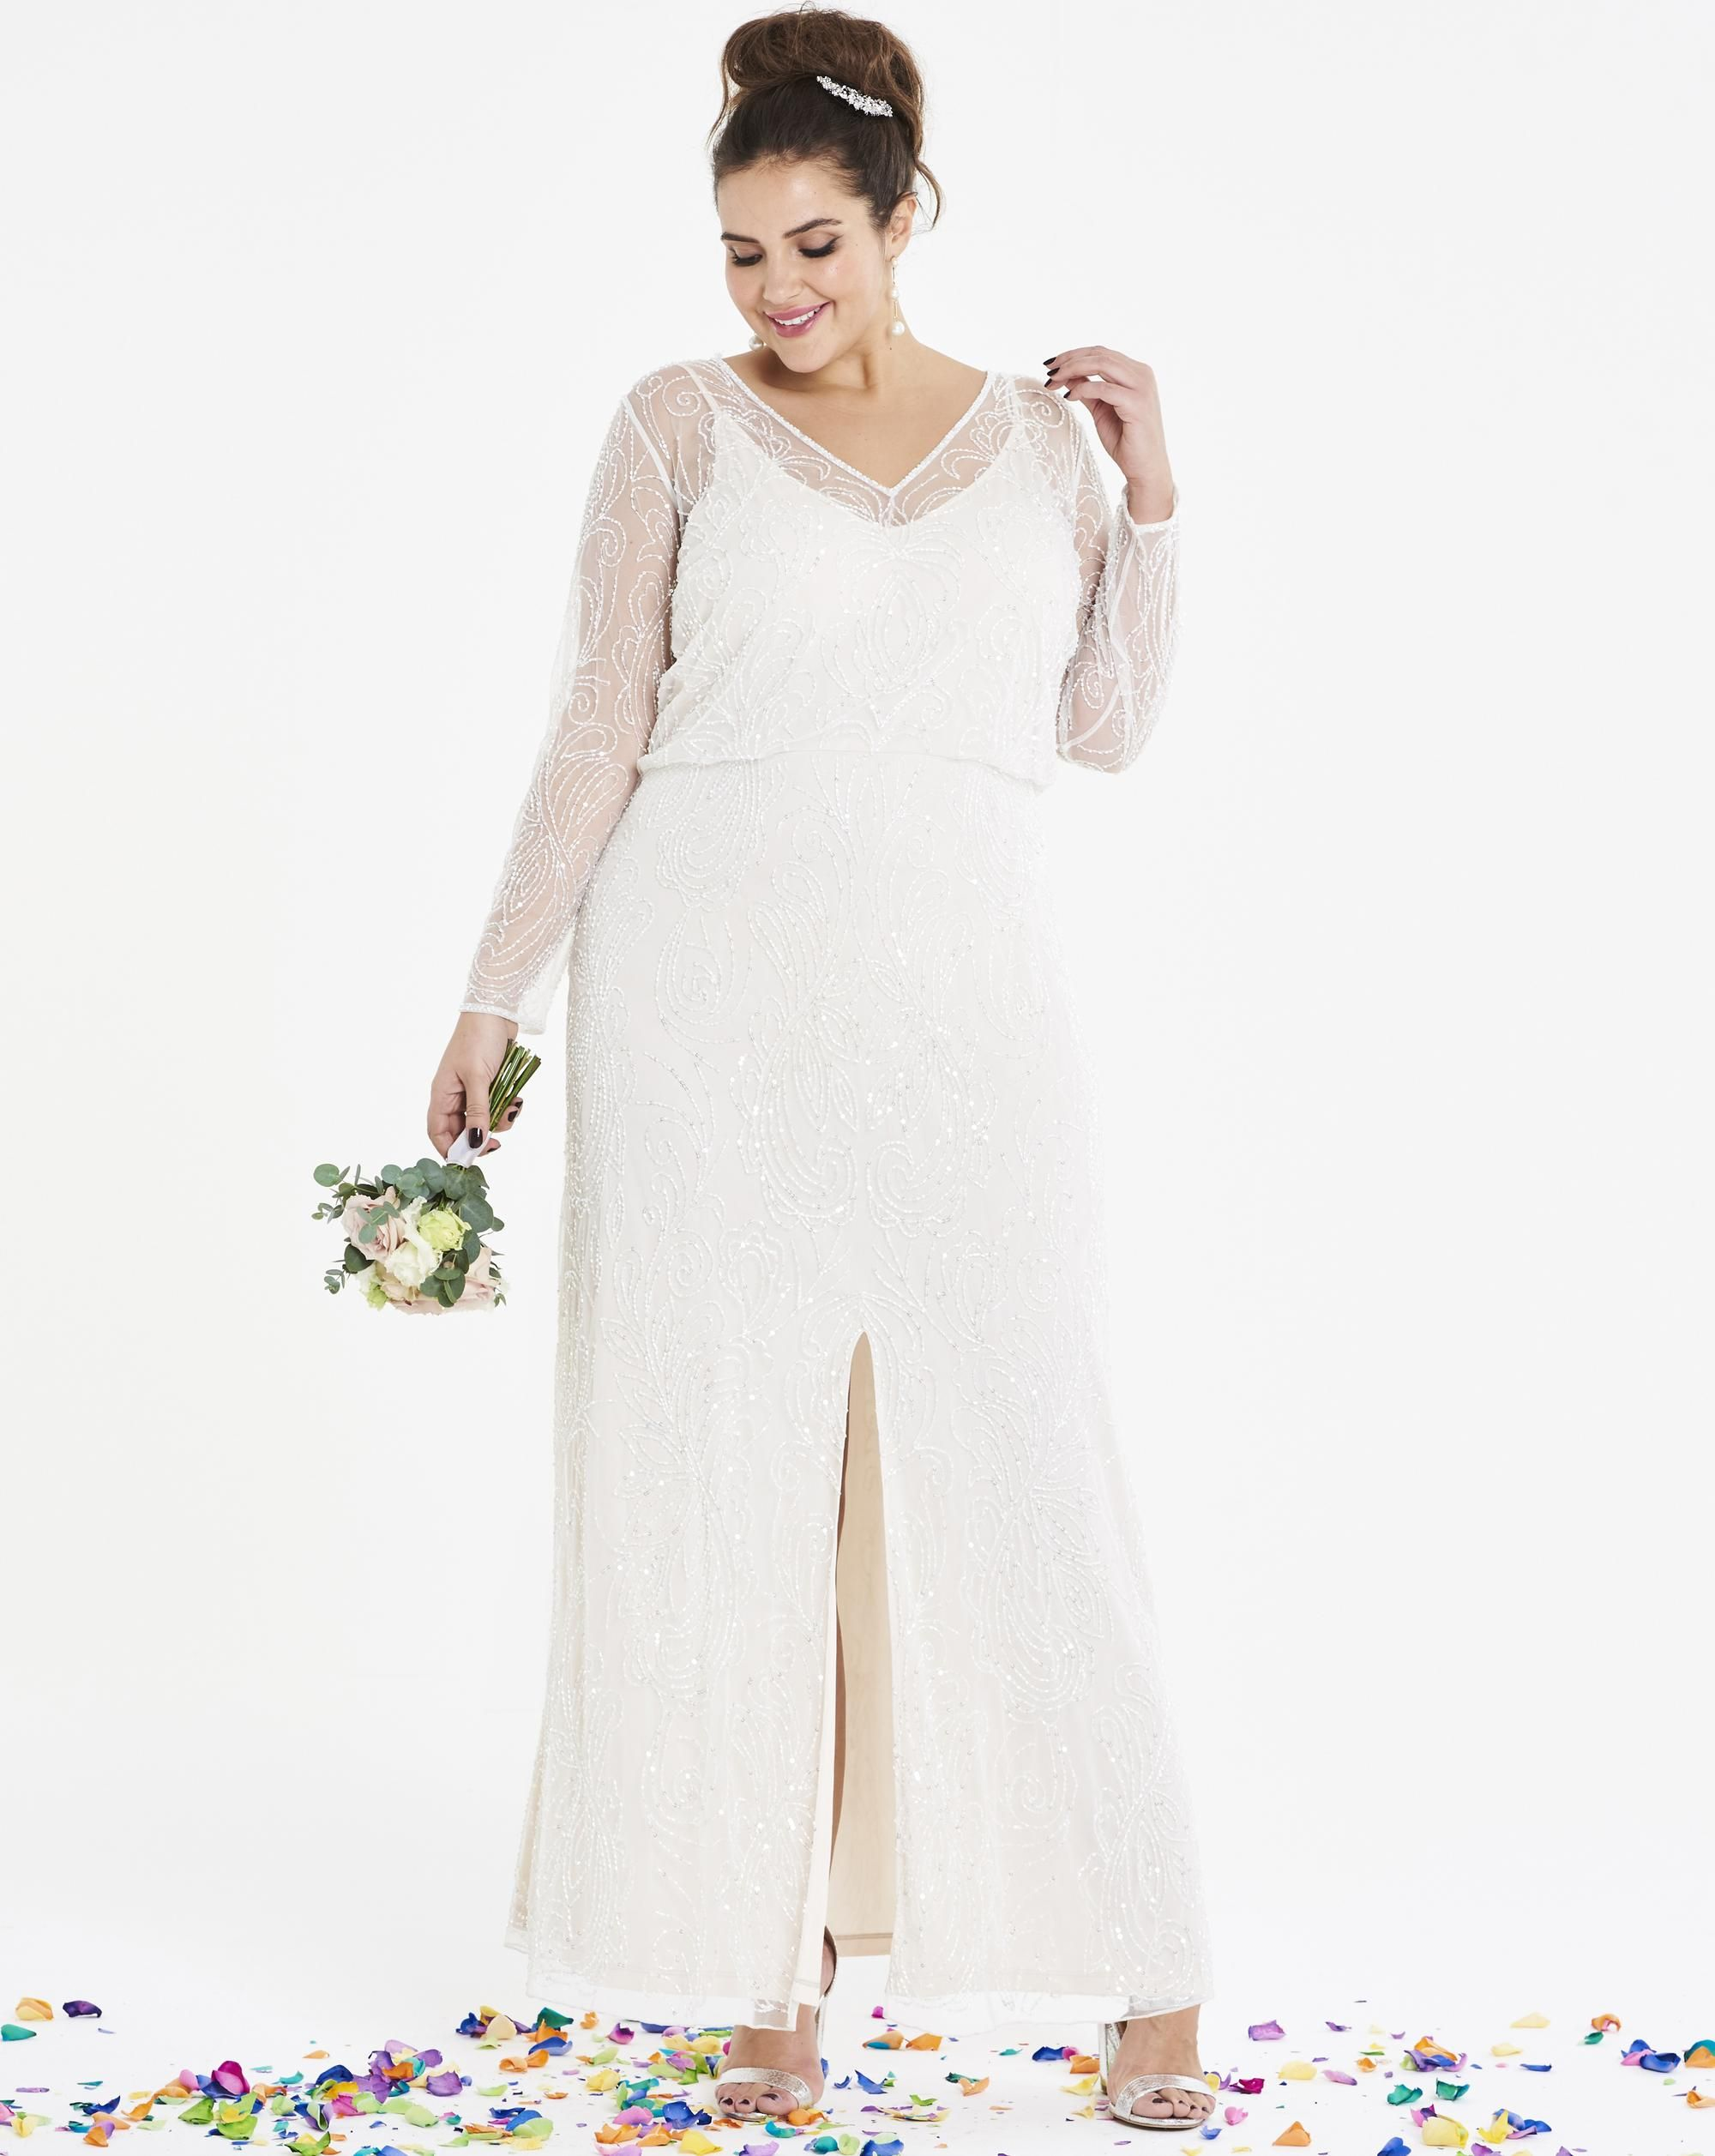 Plus size dresses for wedding summer beaded bridal maxi dress